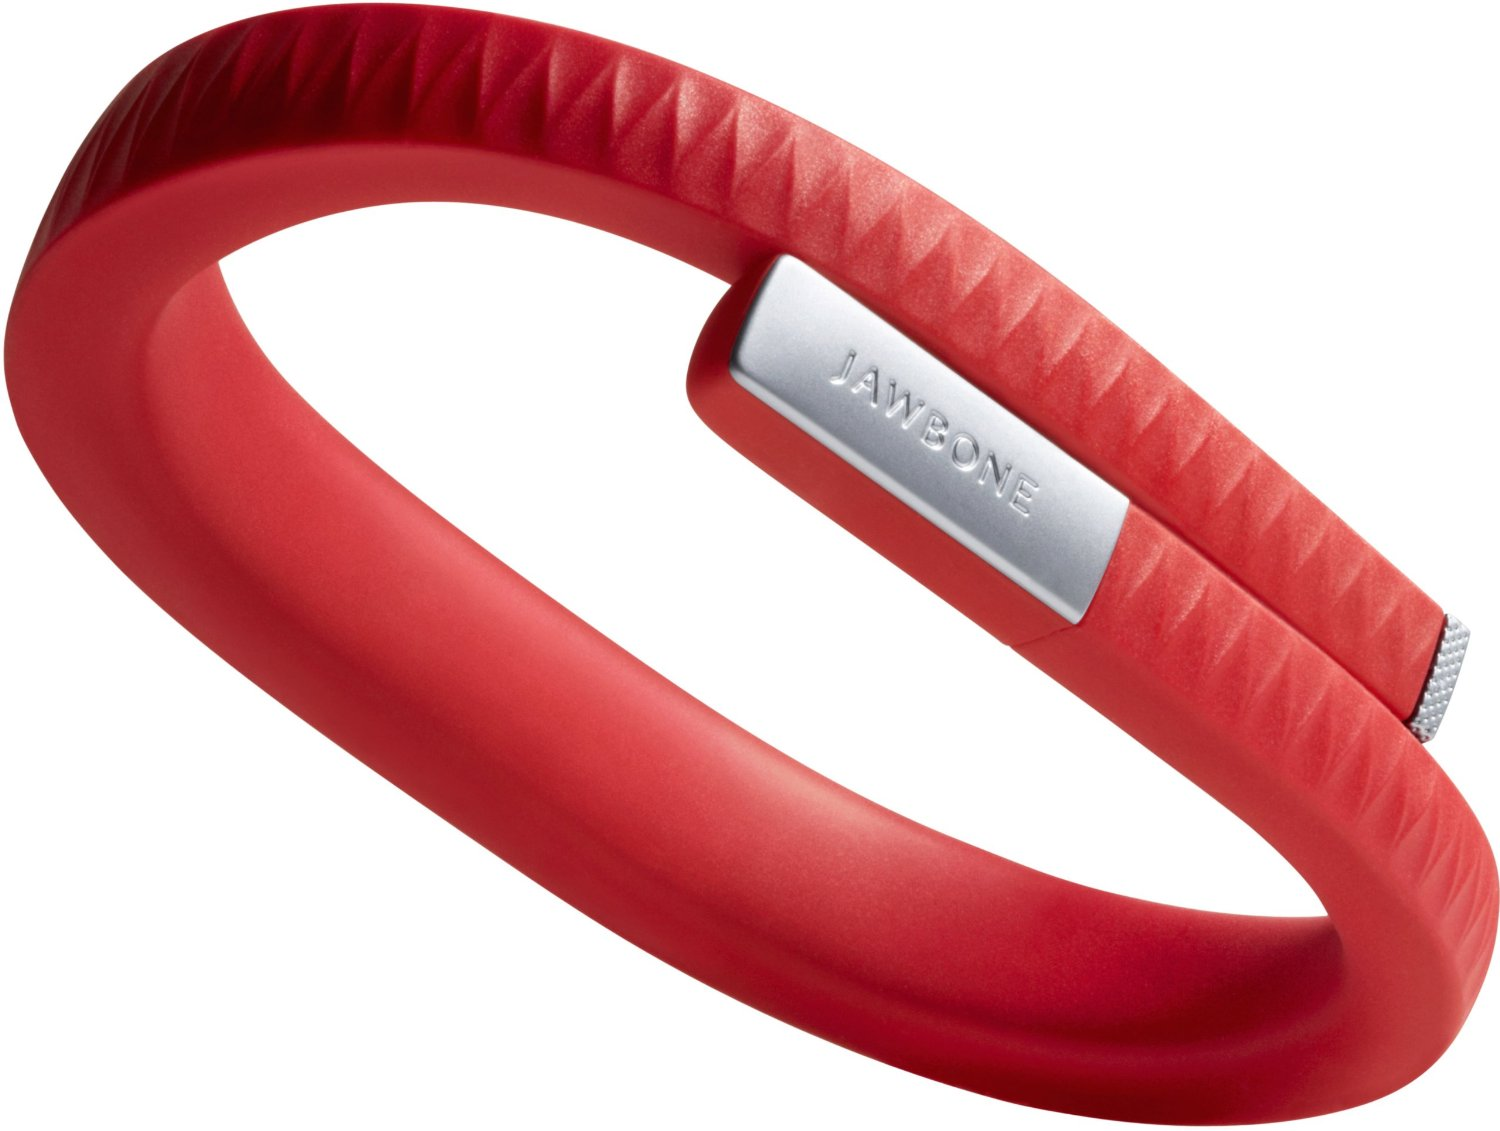 Jawbone Up (red, large)